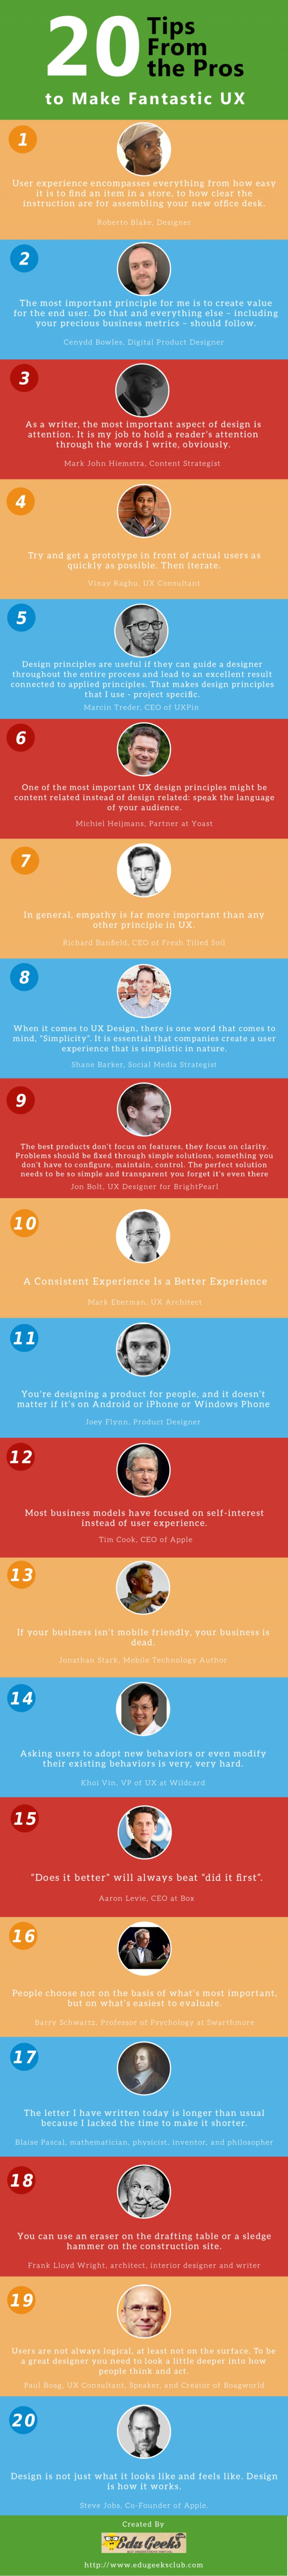 20 Tips to Create a Fantastic User Experience for Your Website Visitors